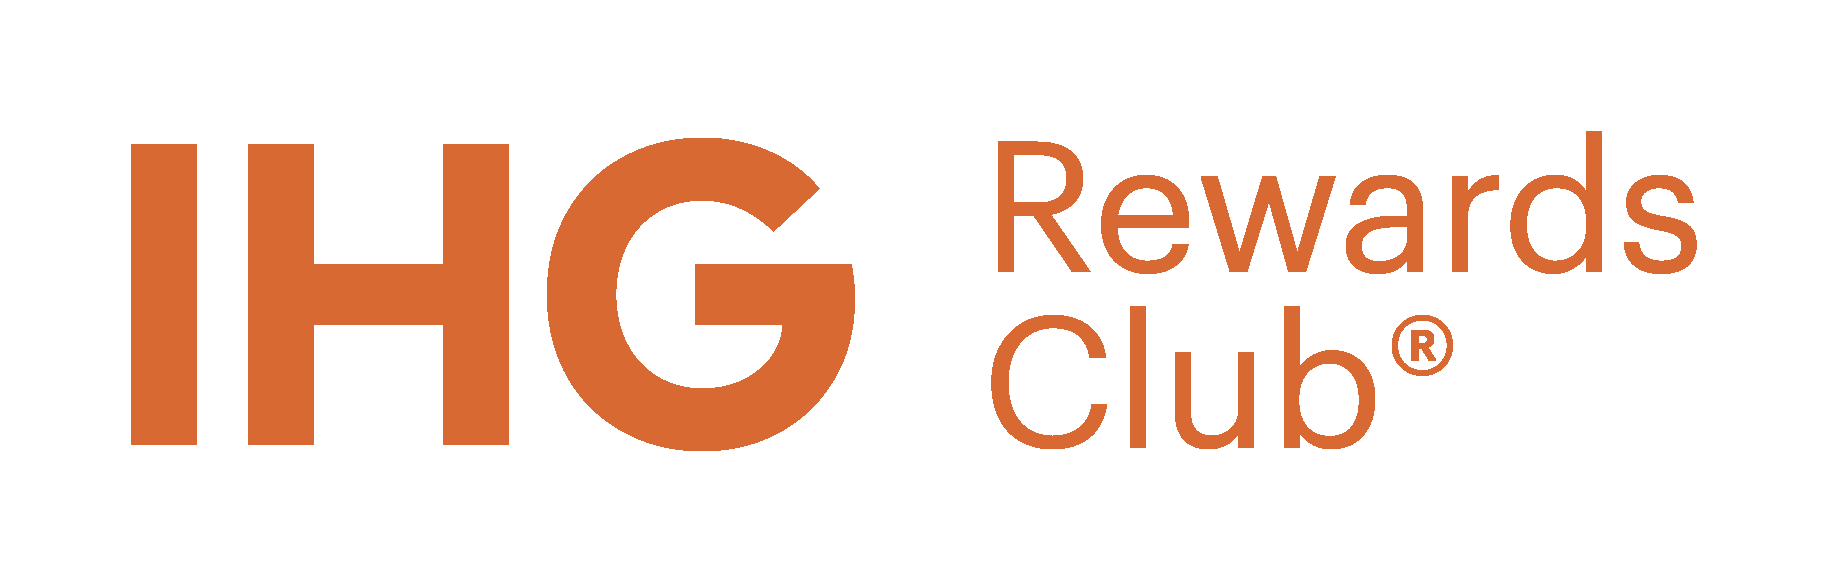 IHG Rewards (1).png